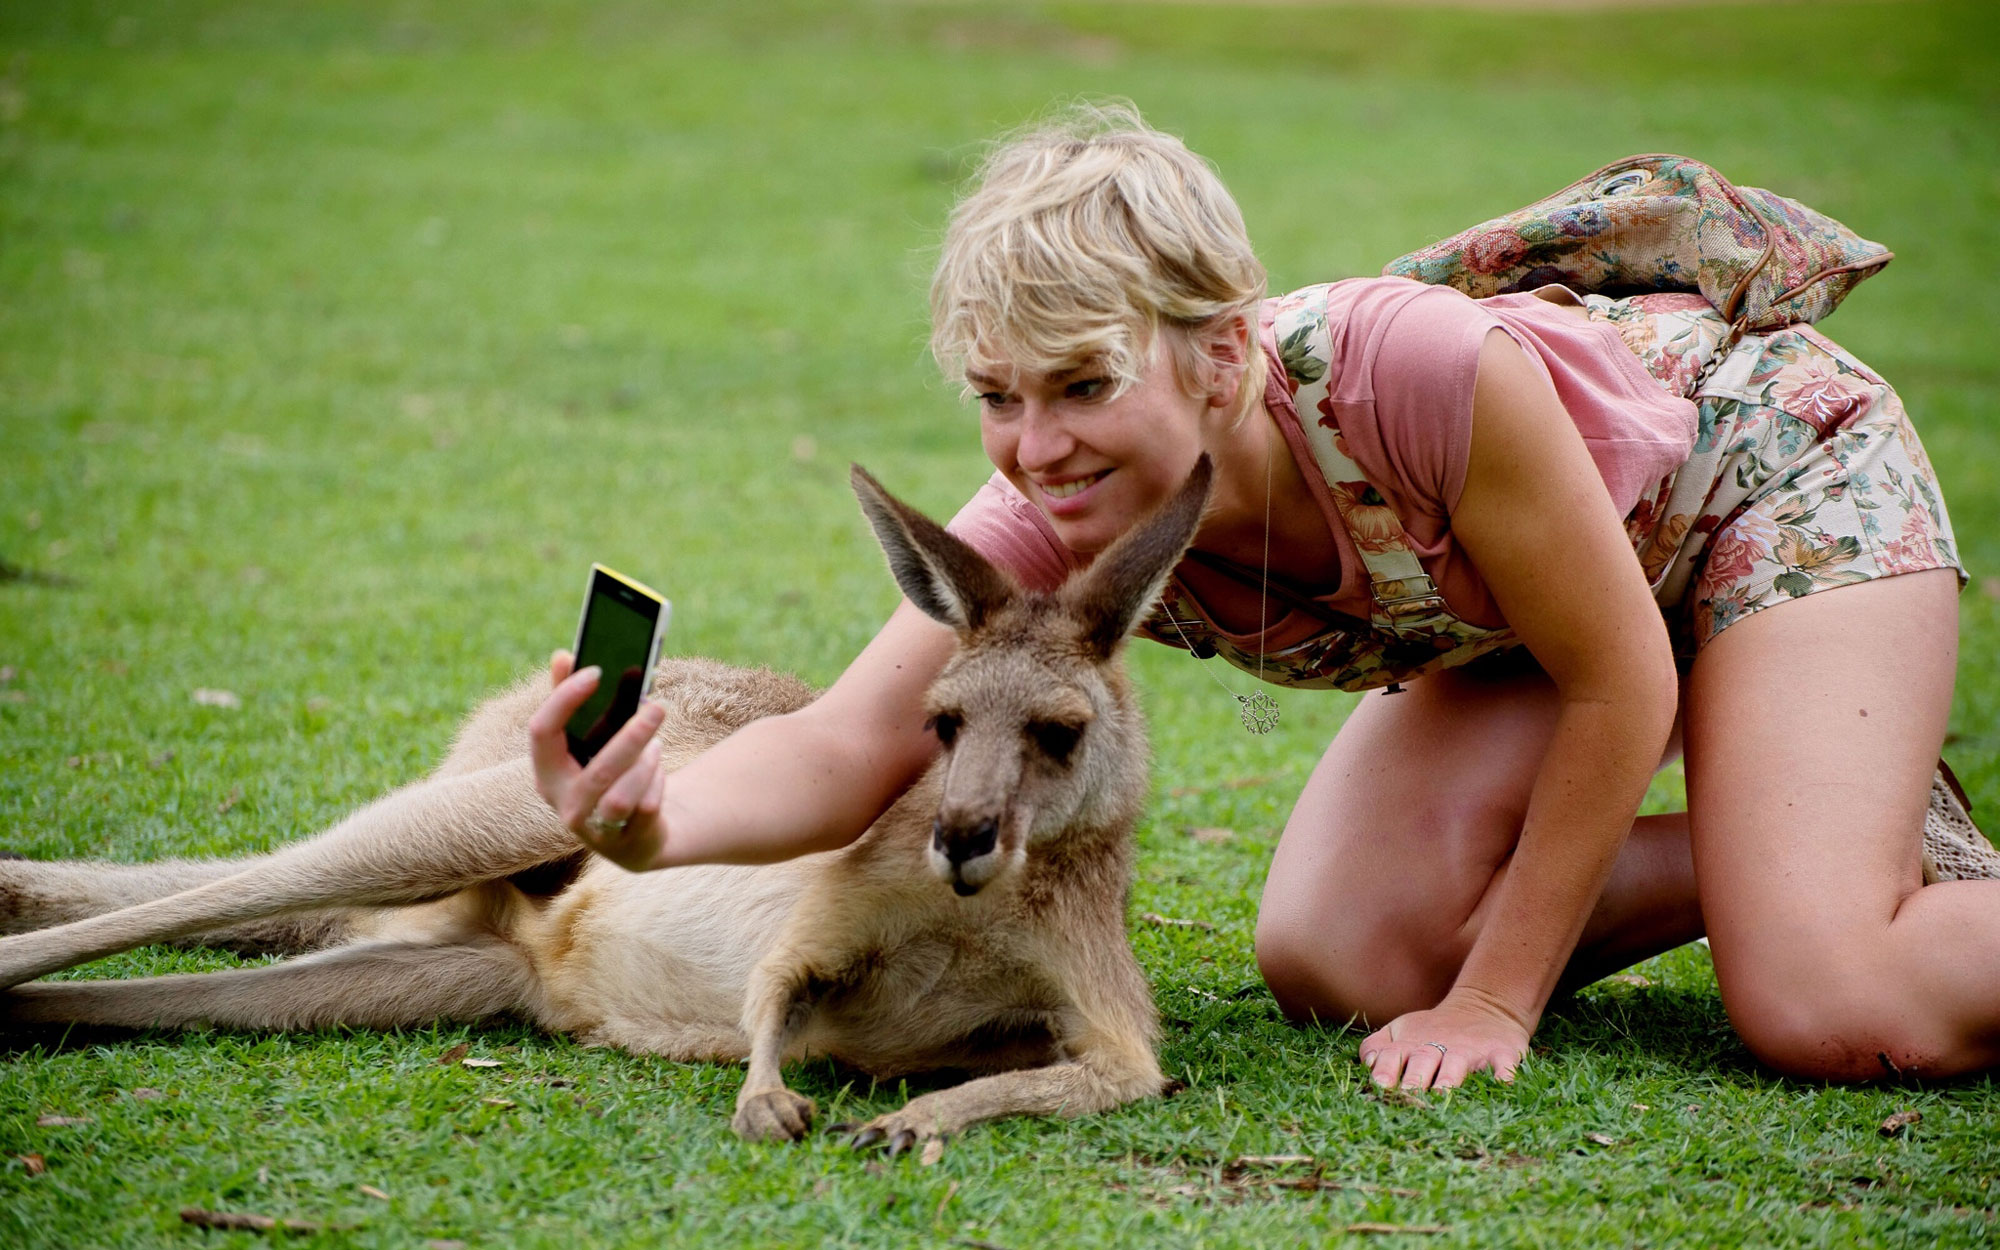 Stop Taking Selfies with Wild Animals